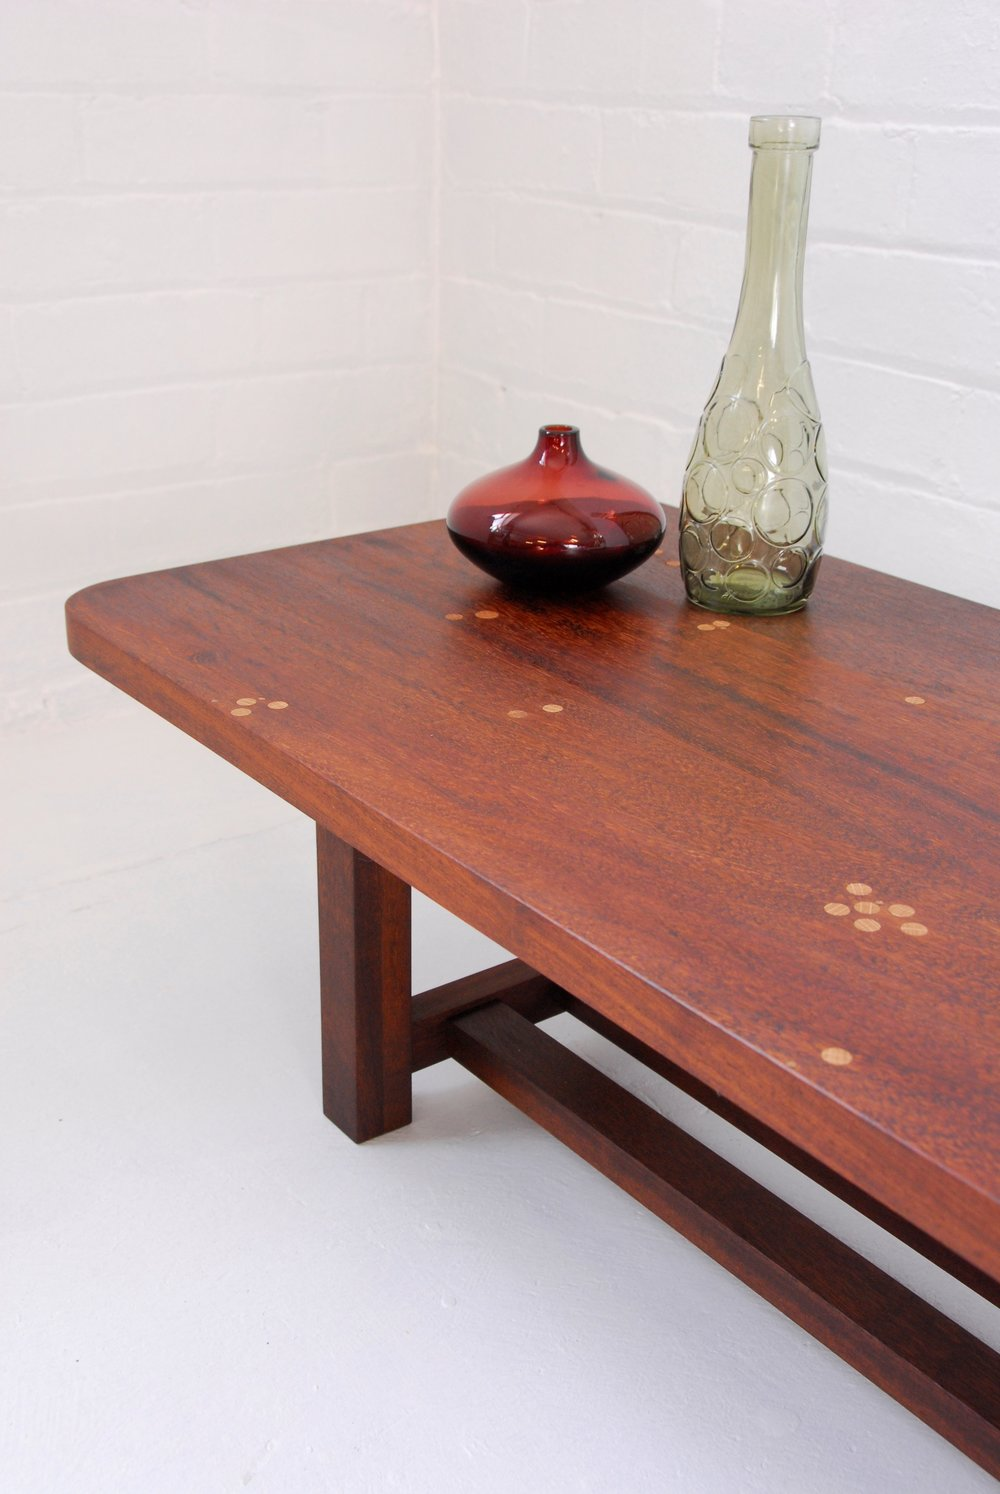 A coffee table with local history - Whilst rummaging through a local reclamation yard we discovered some beautiful iroko timber planks. In a previous life they were the banisters from the iconic Park Hill flats in Sheffield. We repurposed the timber into a table. The bolts holes were filled with oak dowelling to create an intriguing surface design that tells a story.Height: 30cm Width: 100cm Depth: 44cmFor sale: £700